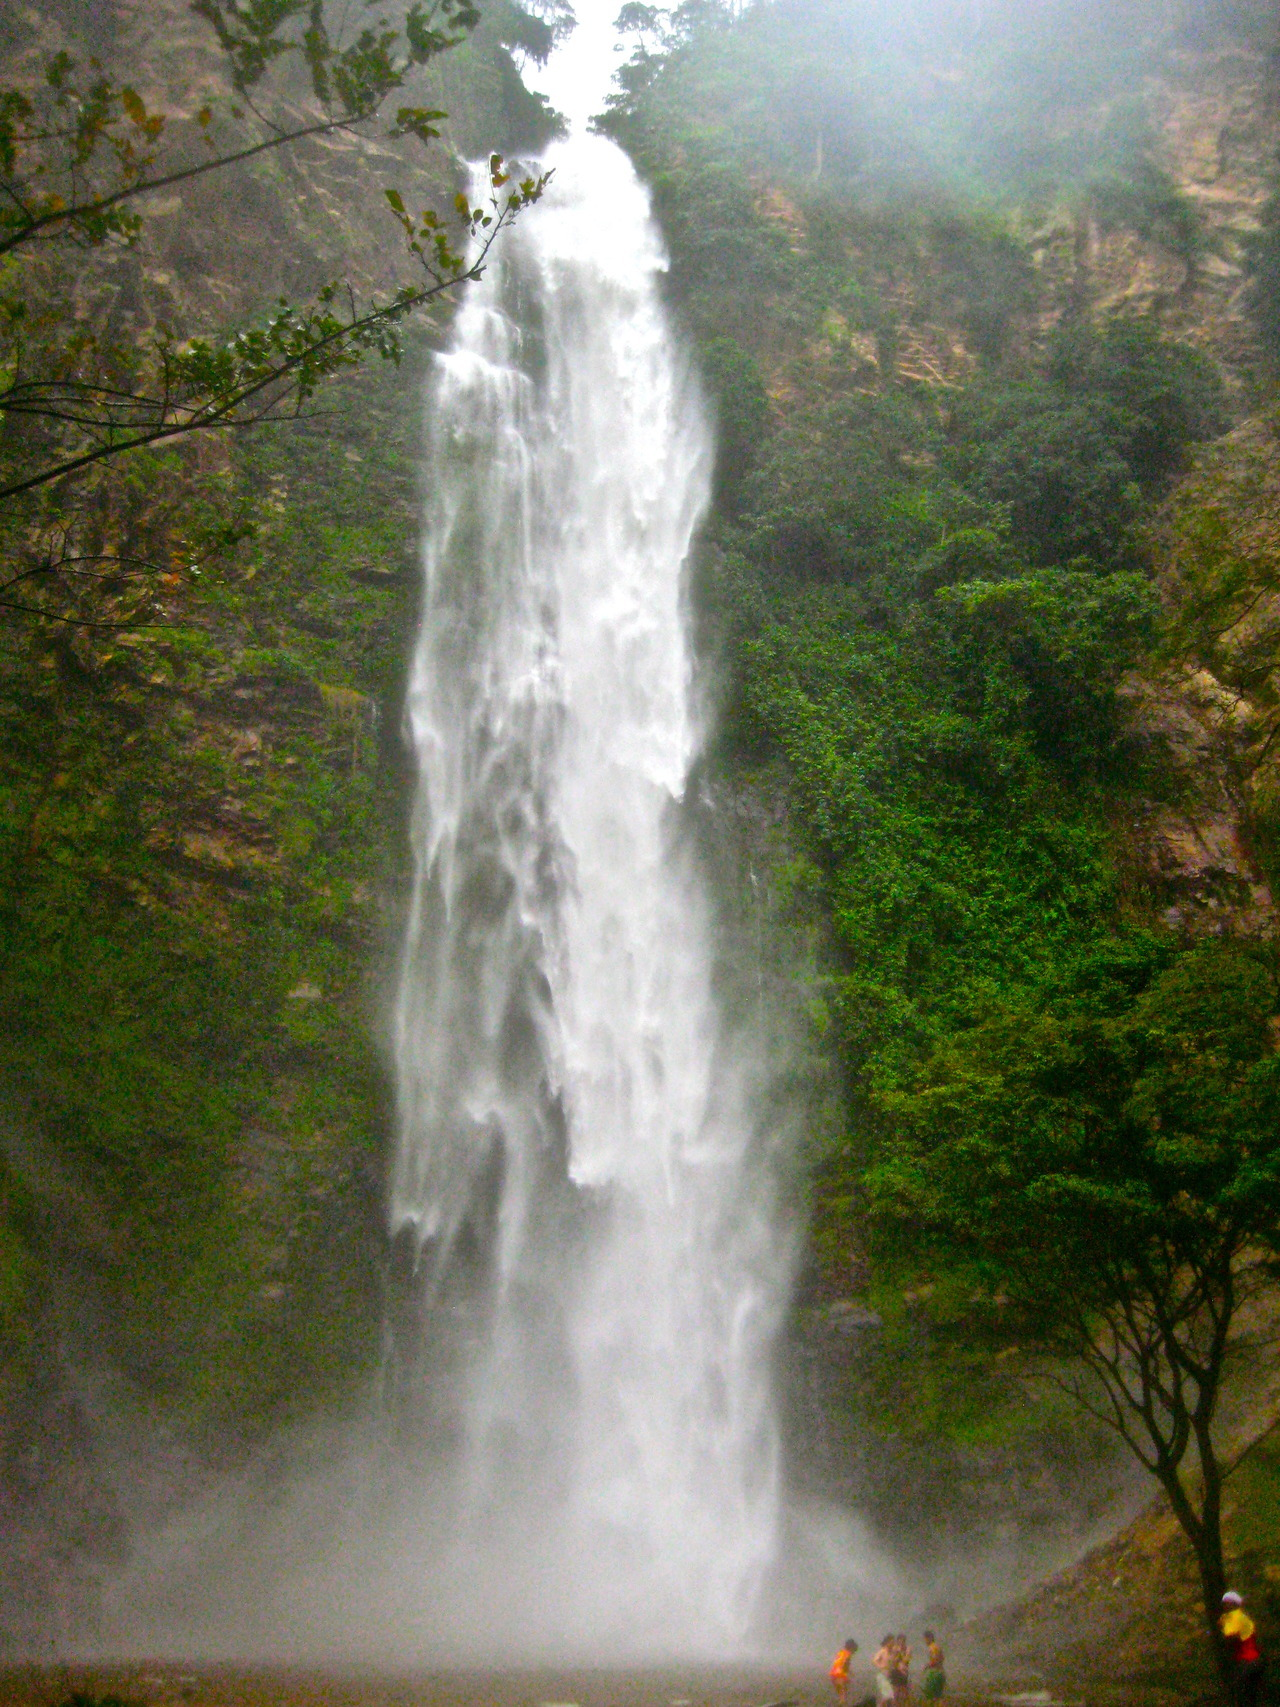 The tallest waterfall in Western Africa - recently seen on a walk through the jungle!